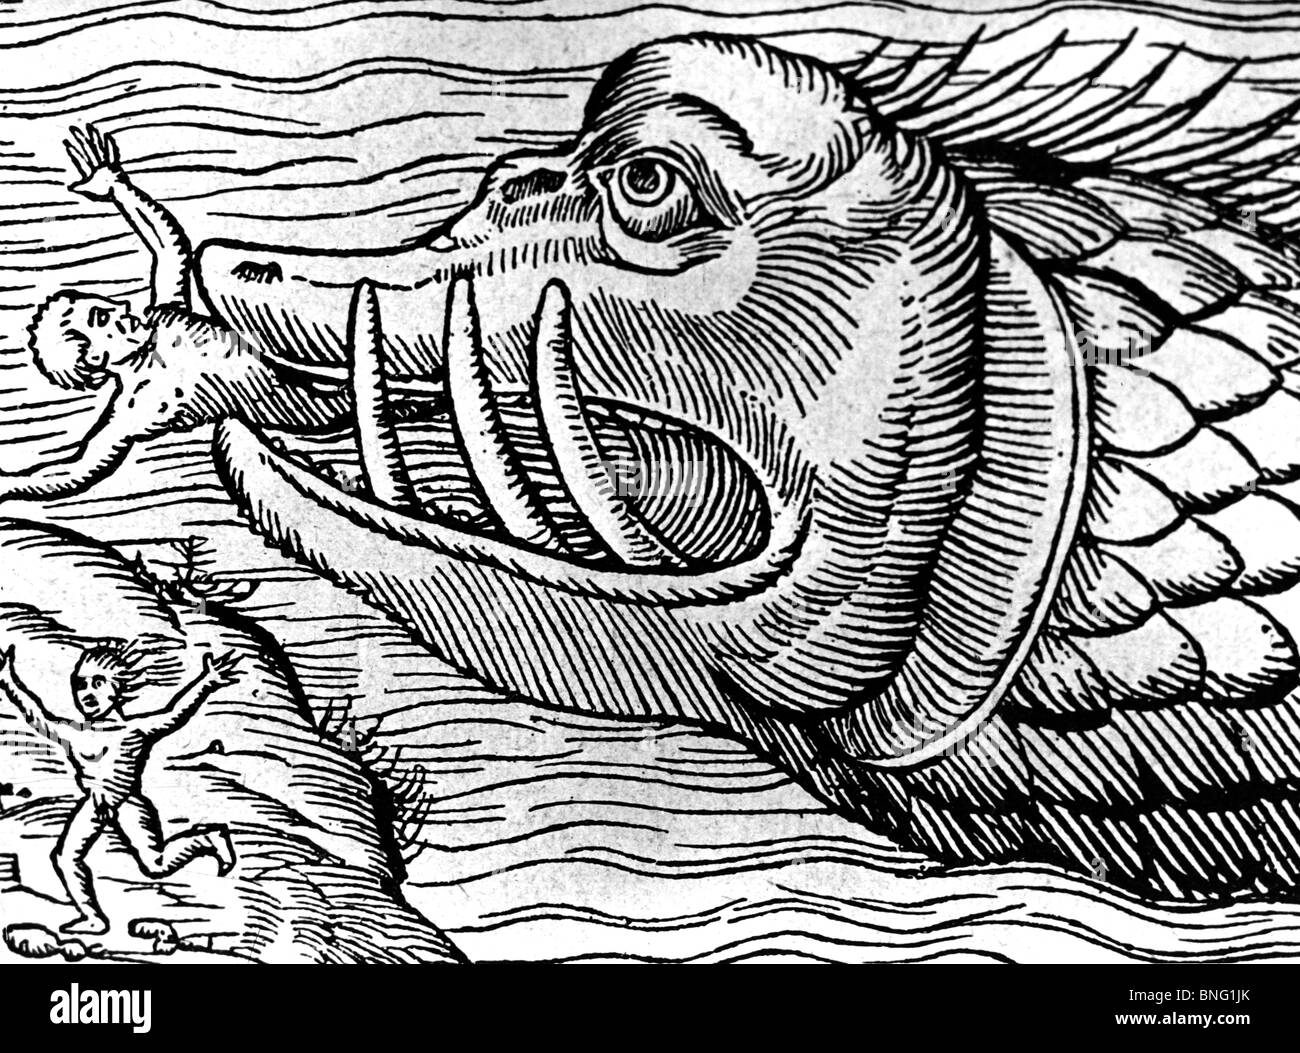 Mythological Sea Creature by artist unknown - Stock Image